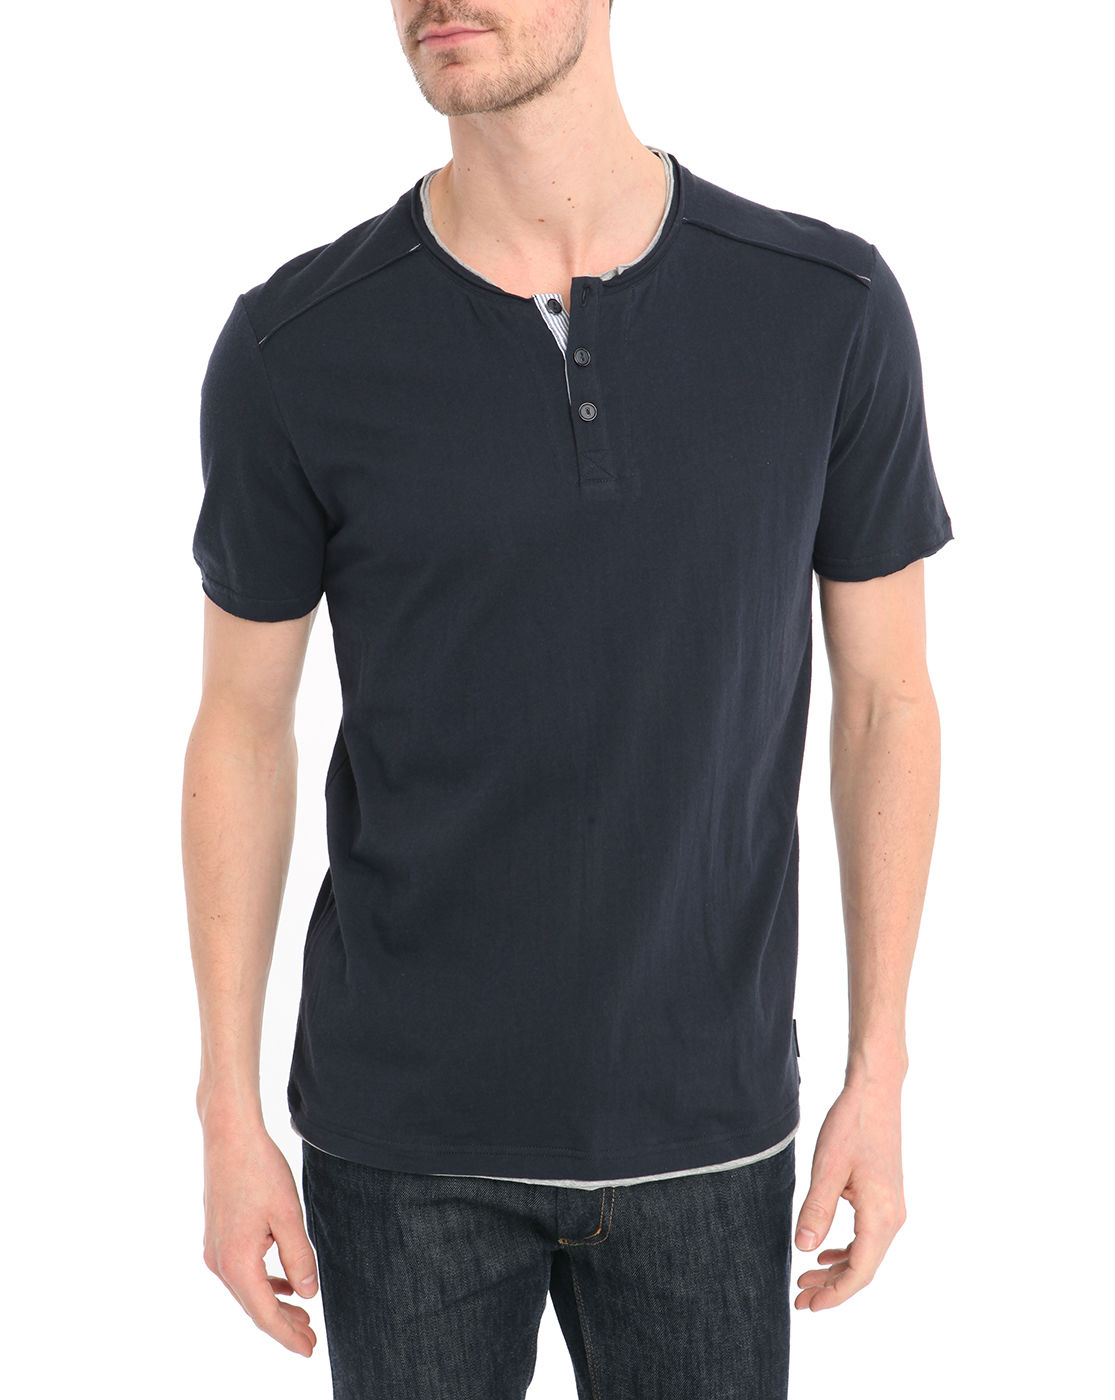 Mens Button Up T Shirts Custom Shirt